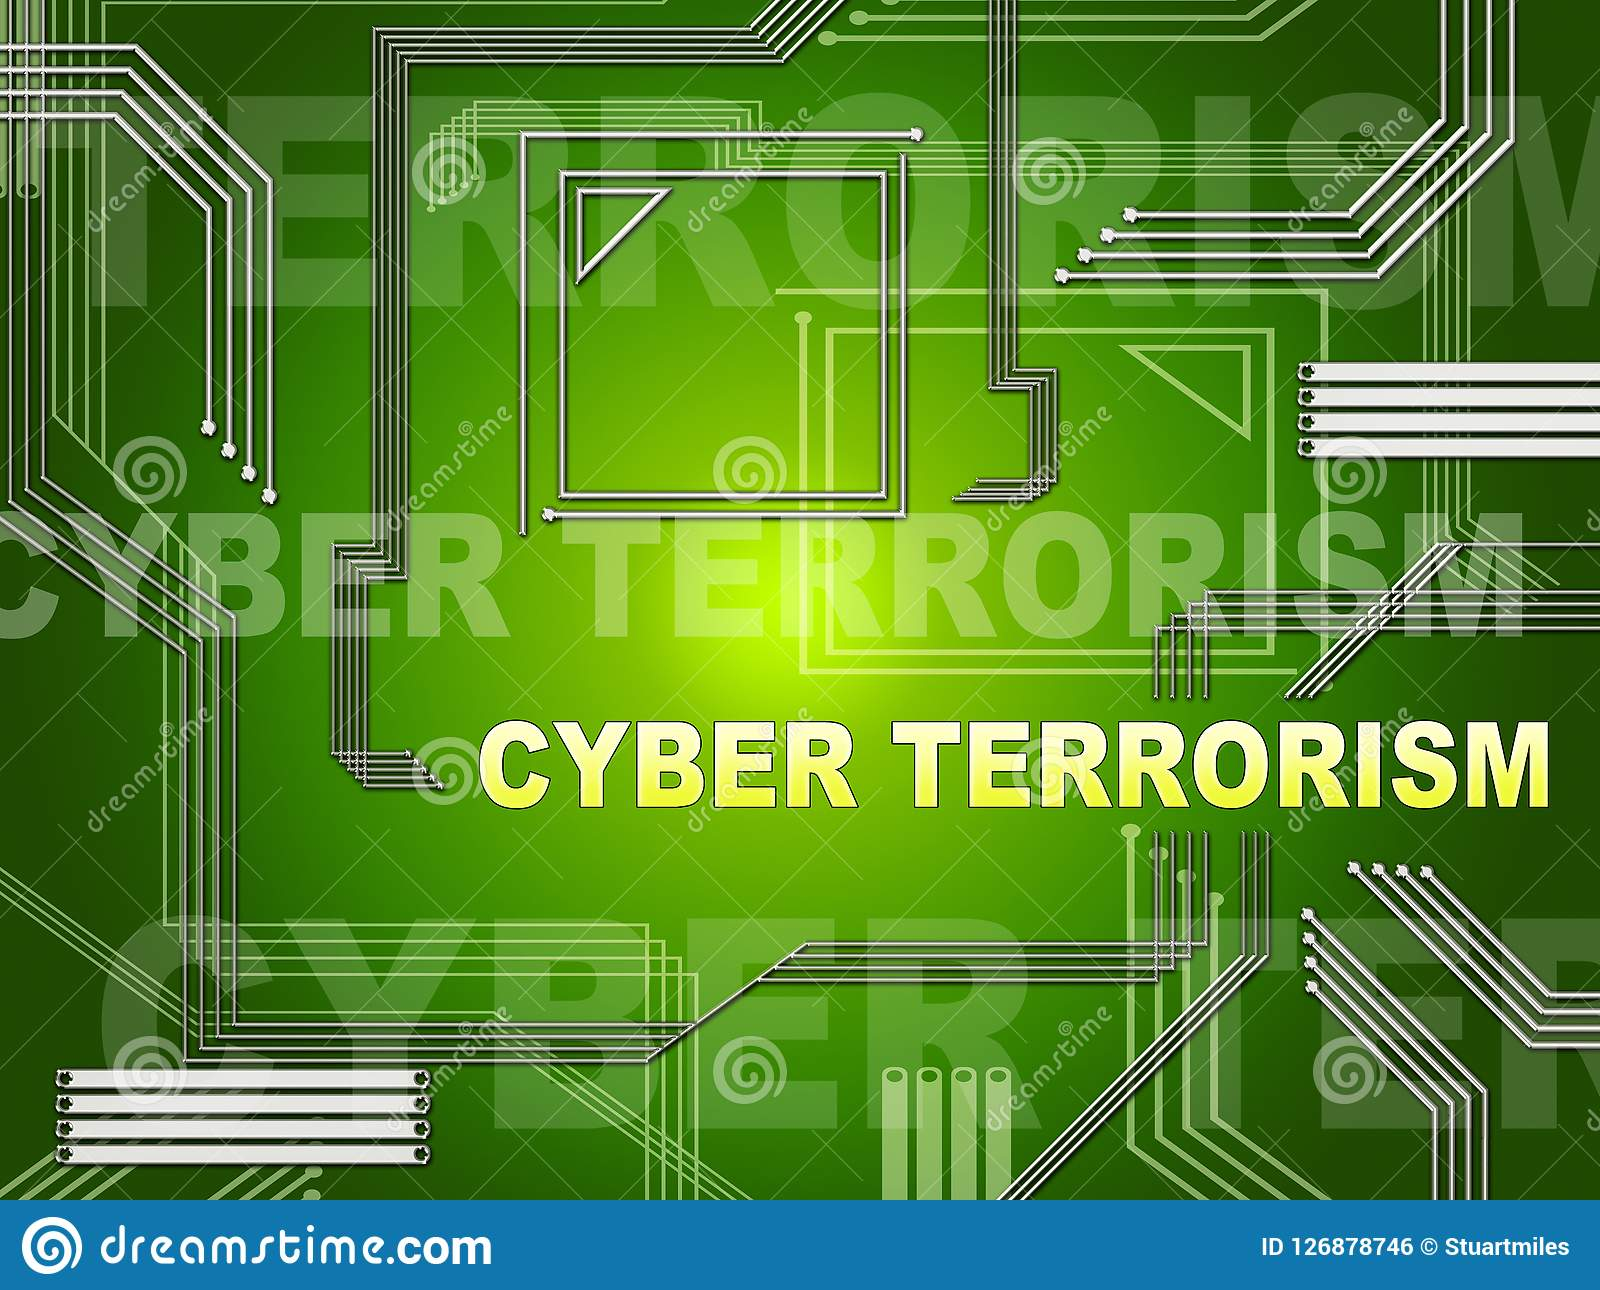 Cyber Terrorism Online Terrorist Crime 2d Illustration Stock